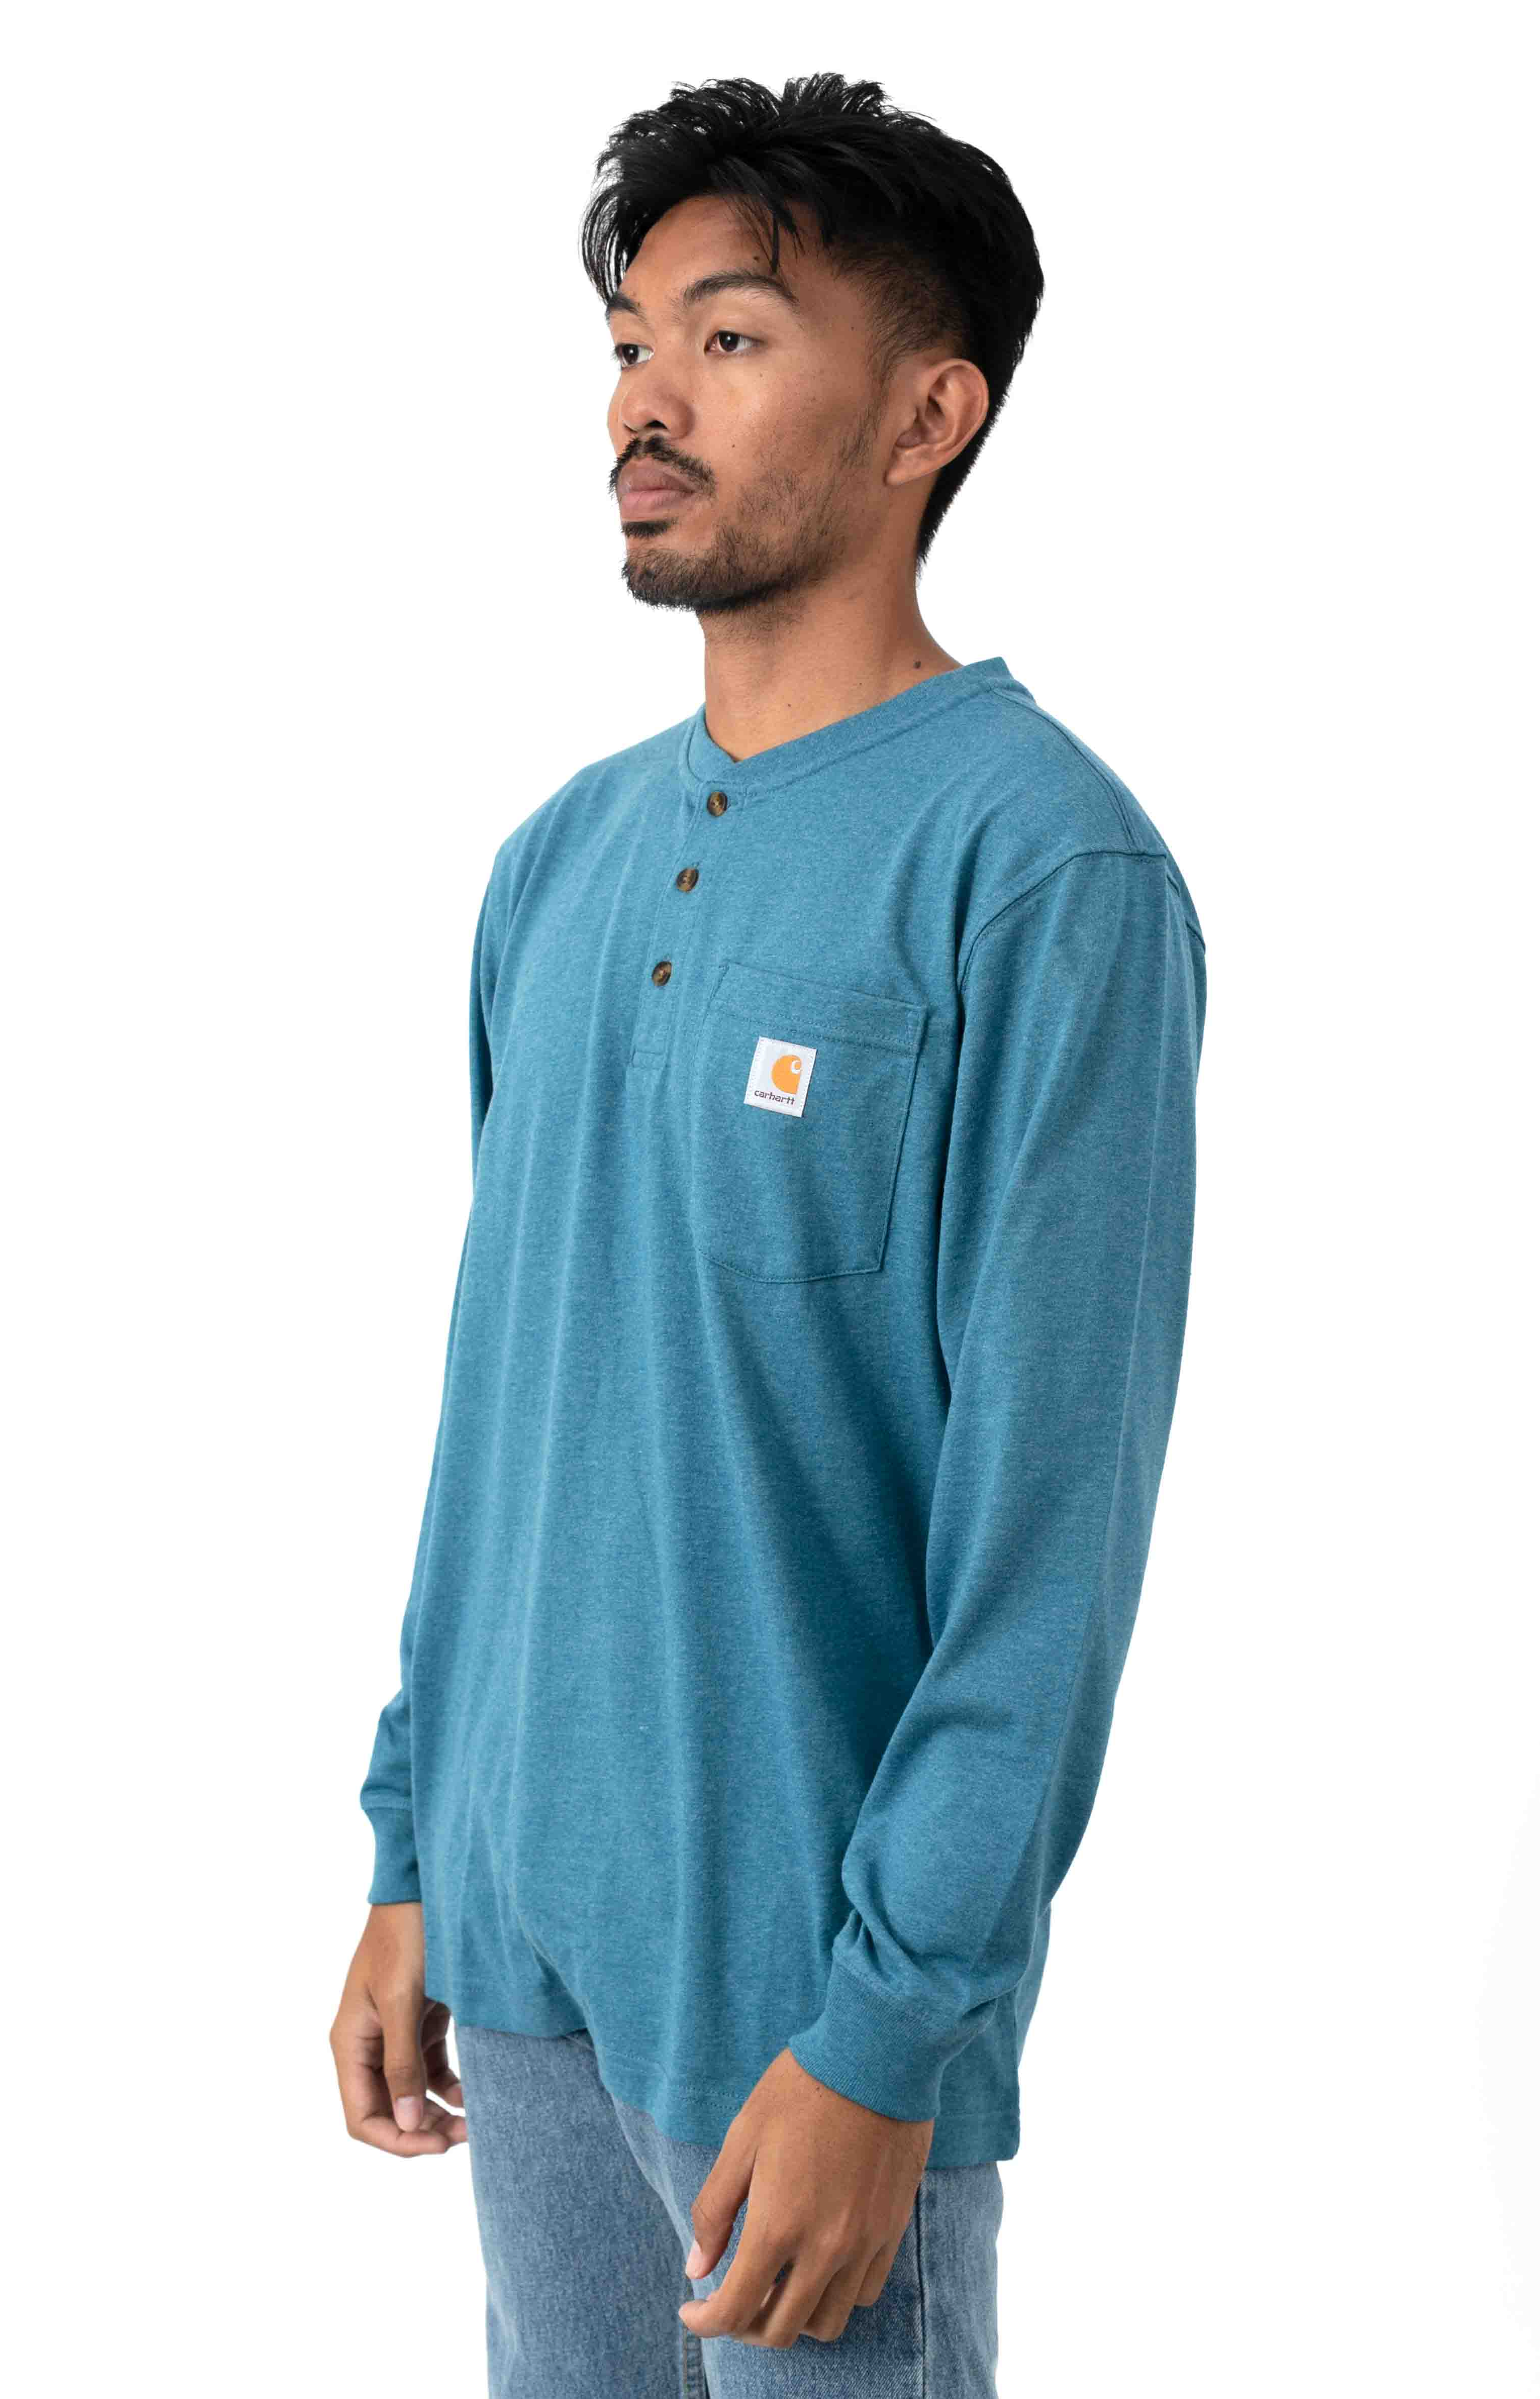 (K128) L/S Workwear Henley - Ocean Blue Heather  2